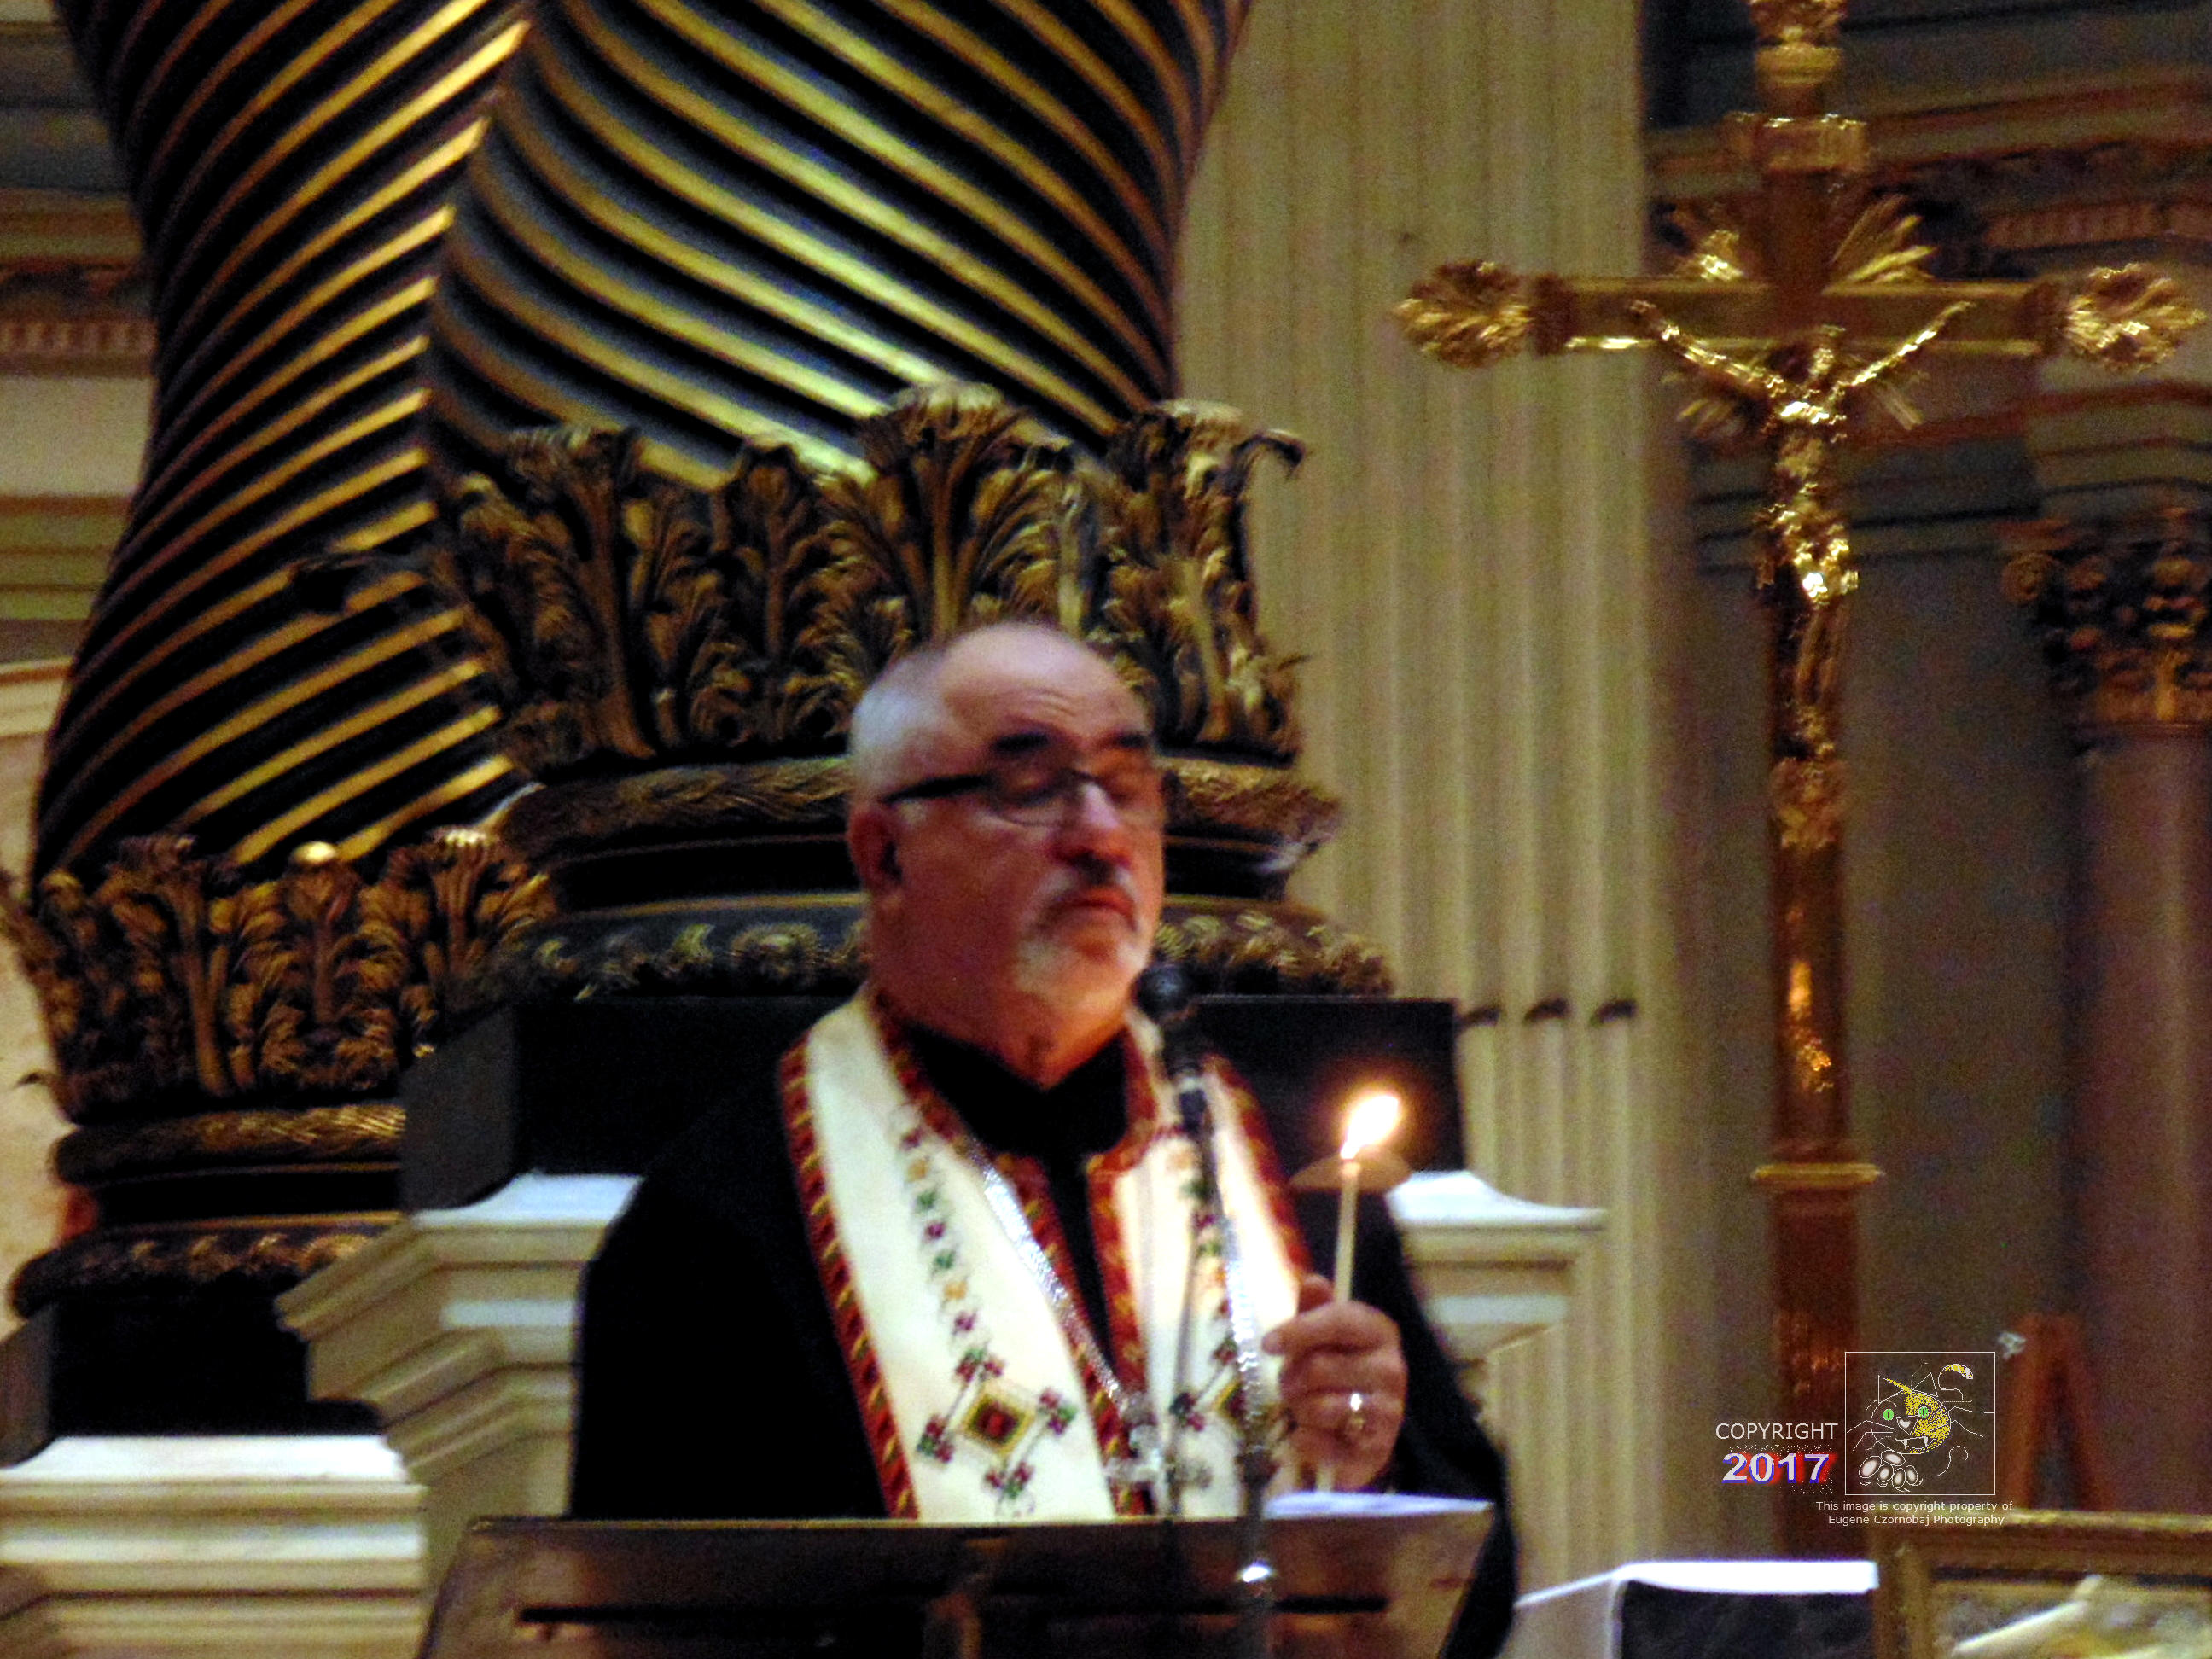 Montreal Ukrainian priest in serene moment of silence during solemn service commemorating 30th Anniversary of Chornobyl Disaster in 2016..